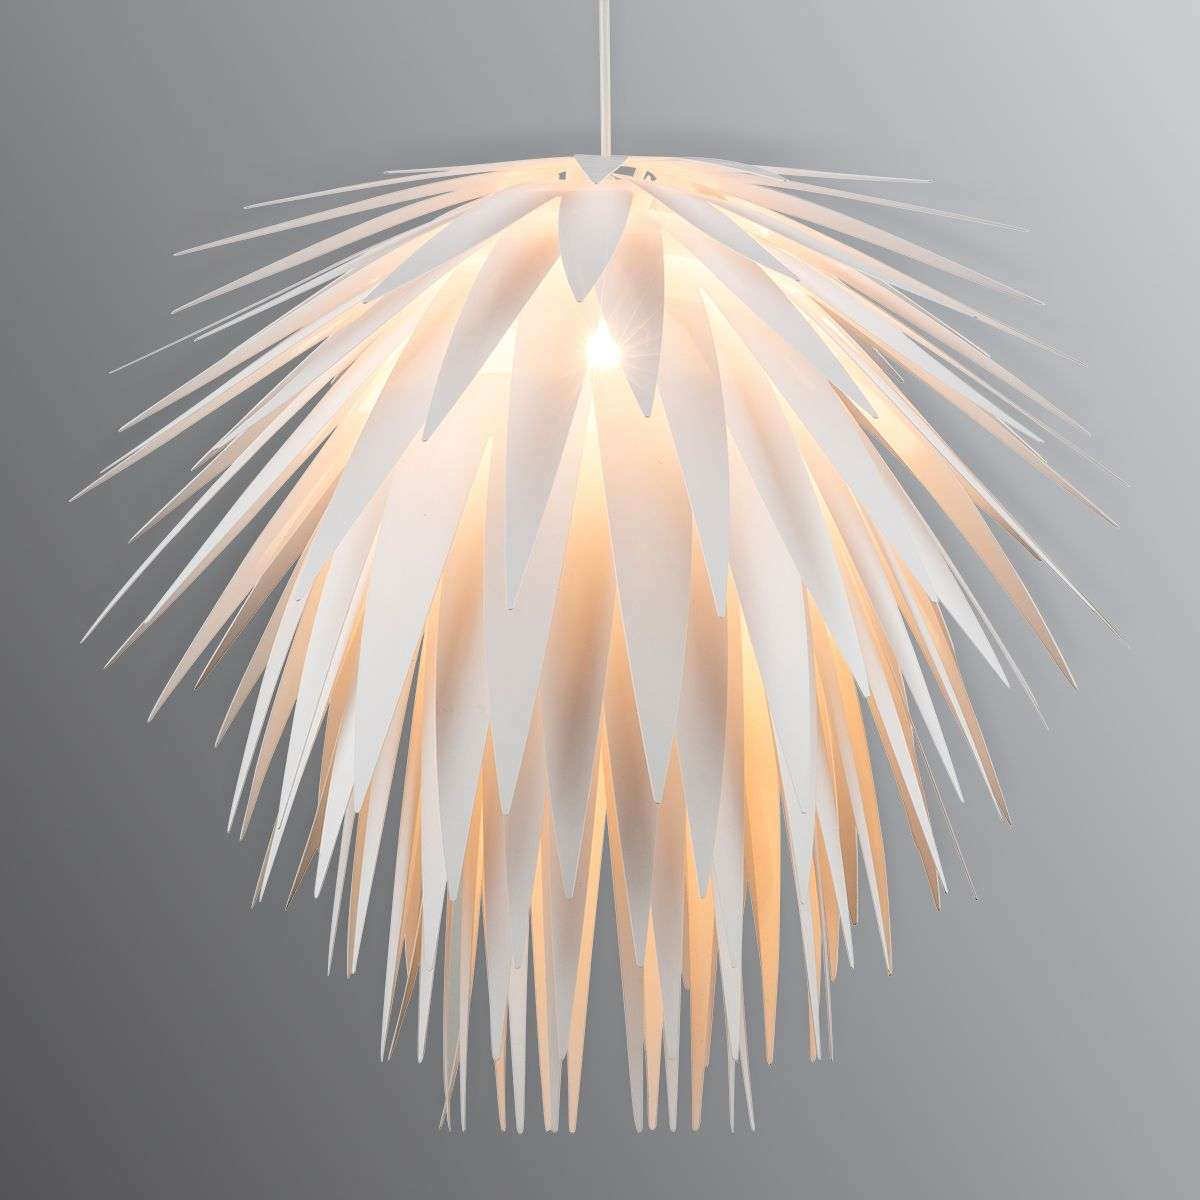 Fascinating hanging light Siw-4014865-31